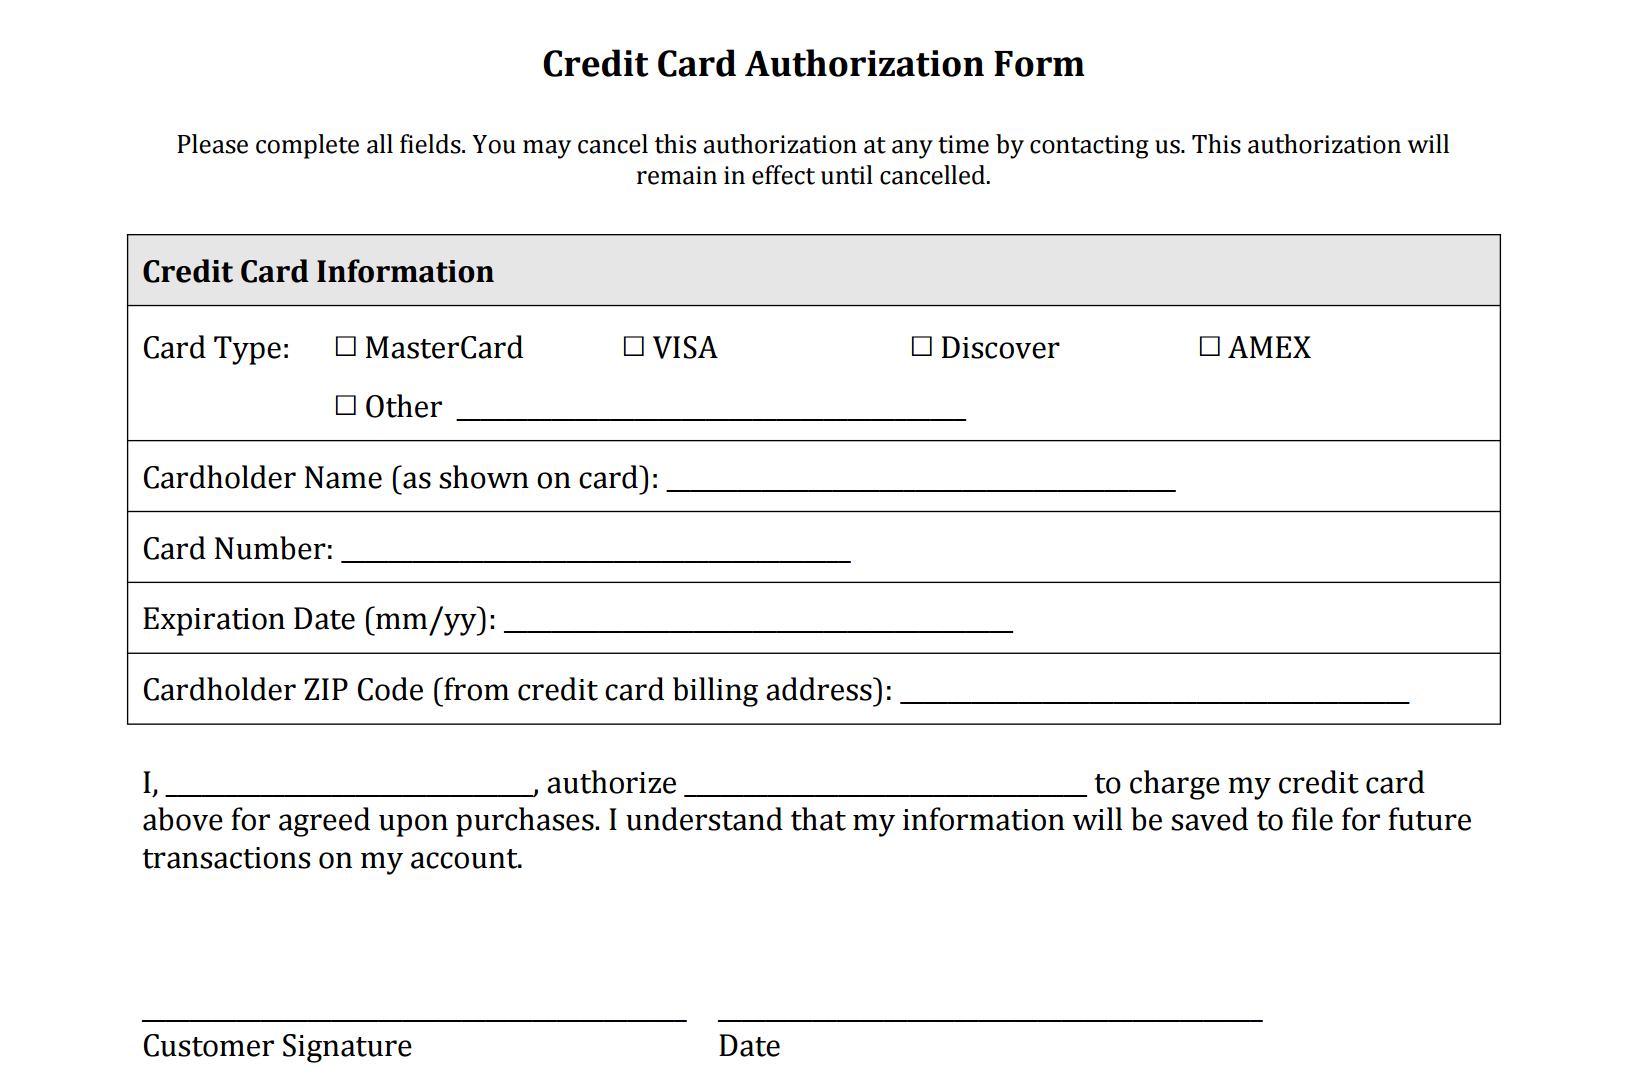 Credit Card Authorization Form Templates [Download] In Credit Card Authorisation Form Template Australia